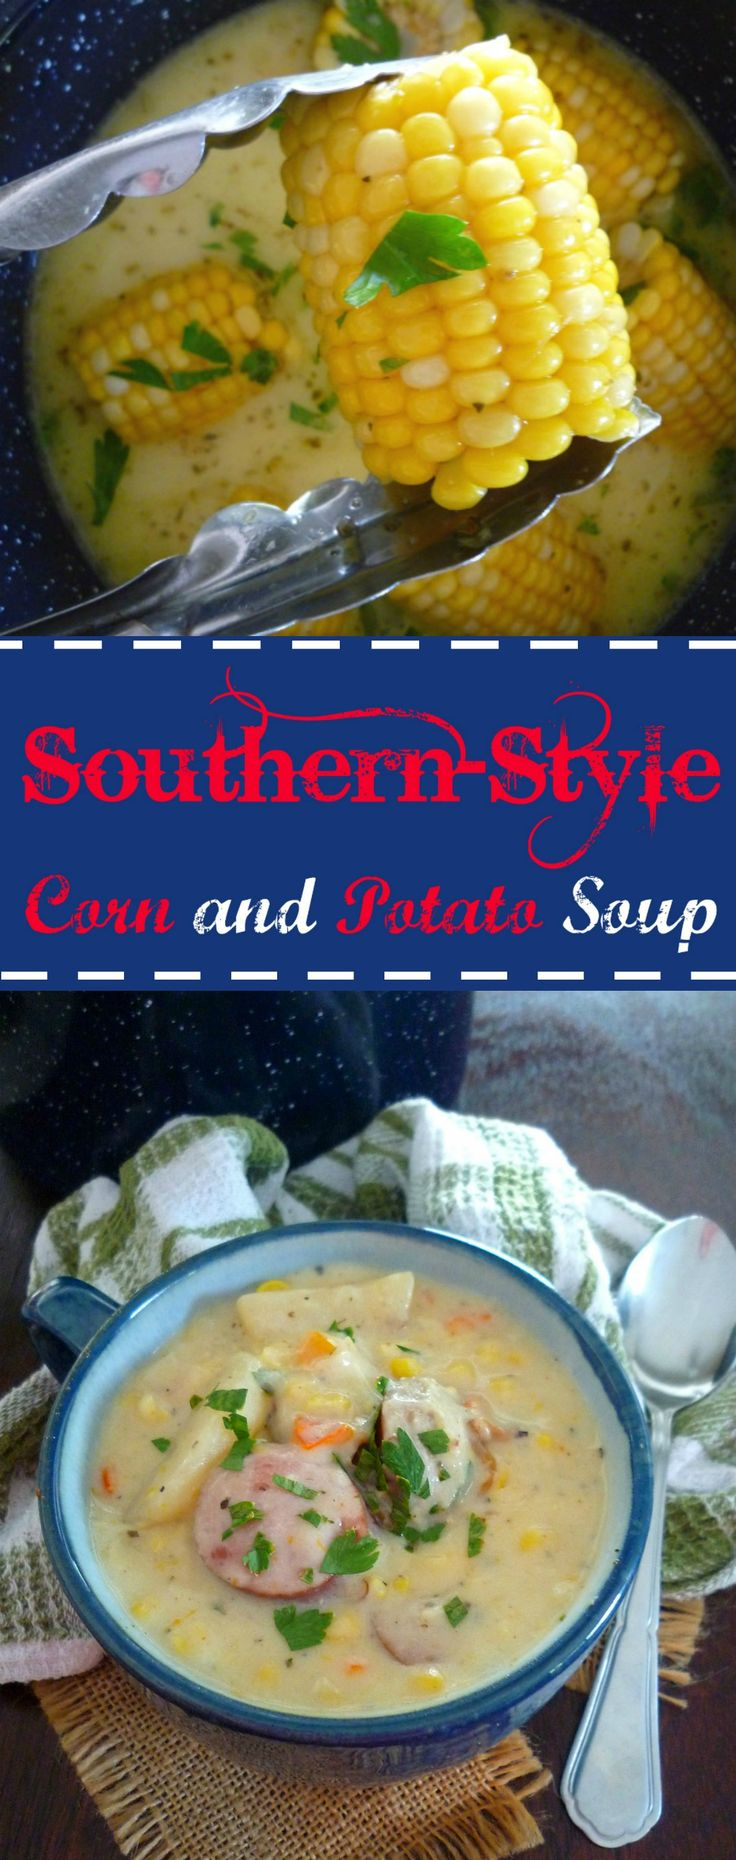 Southern-Style Corn and Potato Soup is the perfect soup that's an exception to the rule during the summer months. Creamy, thick, and delicious are some of the keywords that come to mind when eating this Southern-Style Corn and Potato Soup. Made with leftover fresh sweet corn on the cob, sliced russet potatoes, bite-size smoked sausage slices, chopped sweet red mini peppers, celery, heavy cream, garden fresh herbs, and Cajun seasoning.